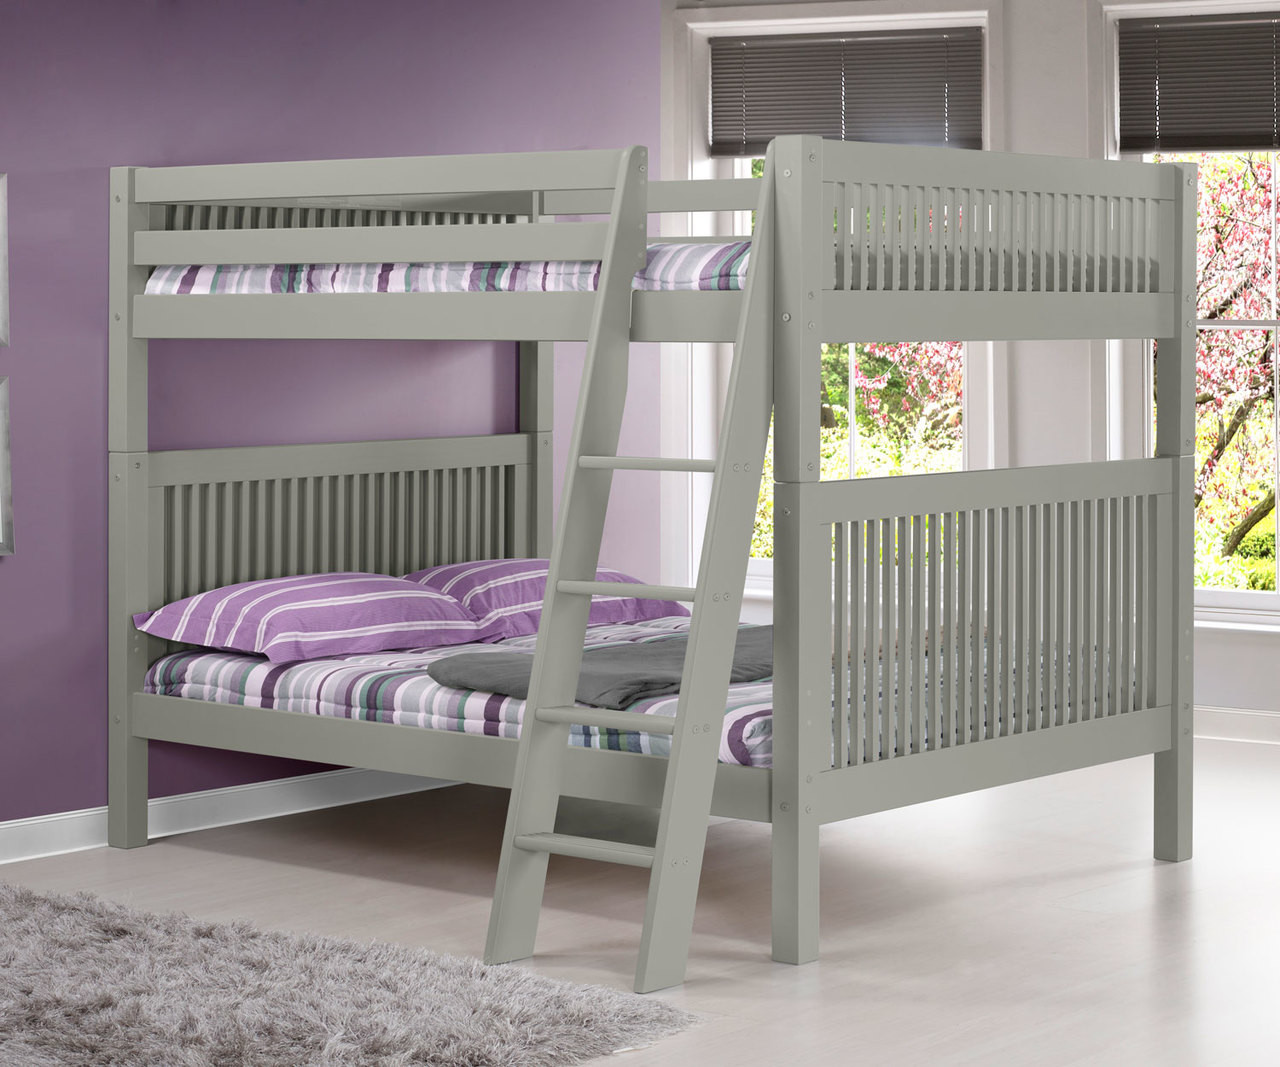 Picture of: Camaflexi Full Over Full Bunk Bed In Grey E1614a Camaflexi Furniture Solid Wood Kids Furniture